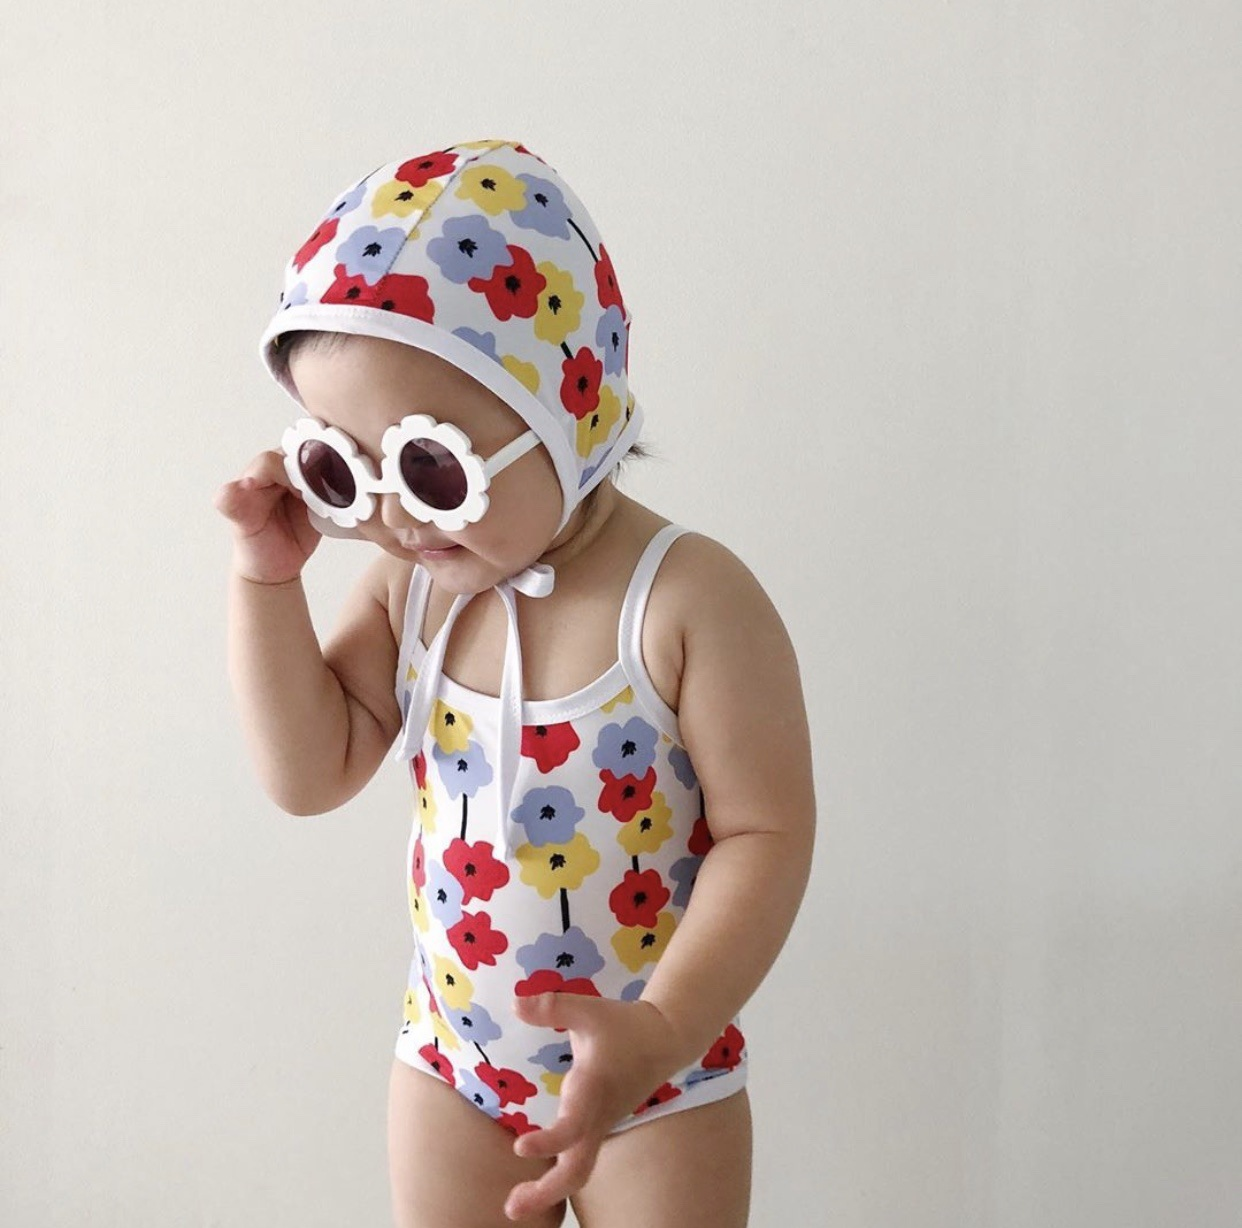 Newborn Infant Baby Boy And Girl Sleeveless Sling Swimsuit Toddler Kid Cotton Flower Pattern Printed With Swimming Cap